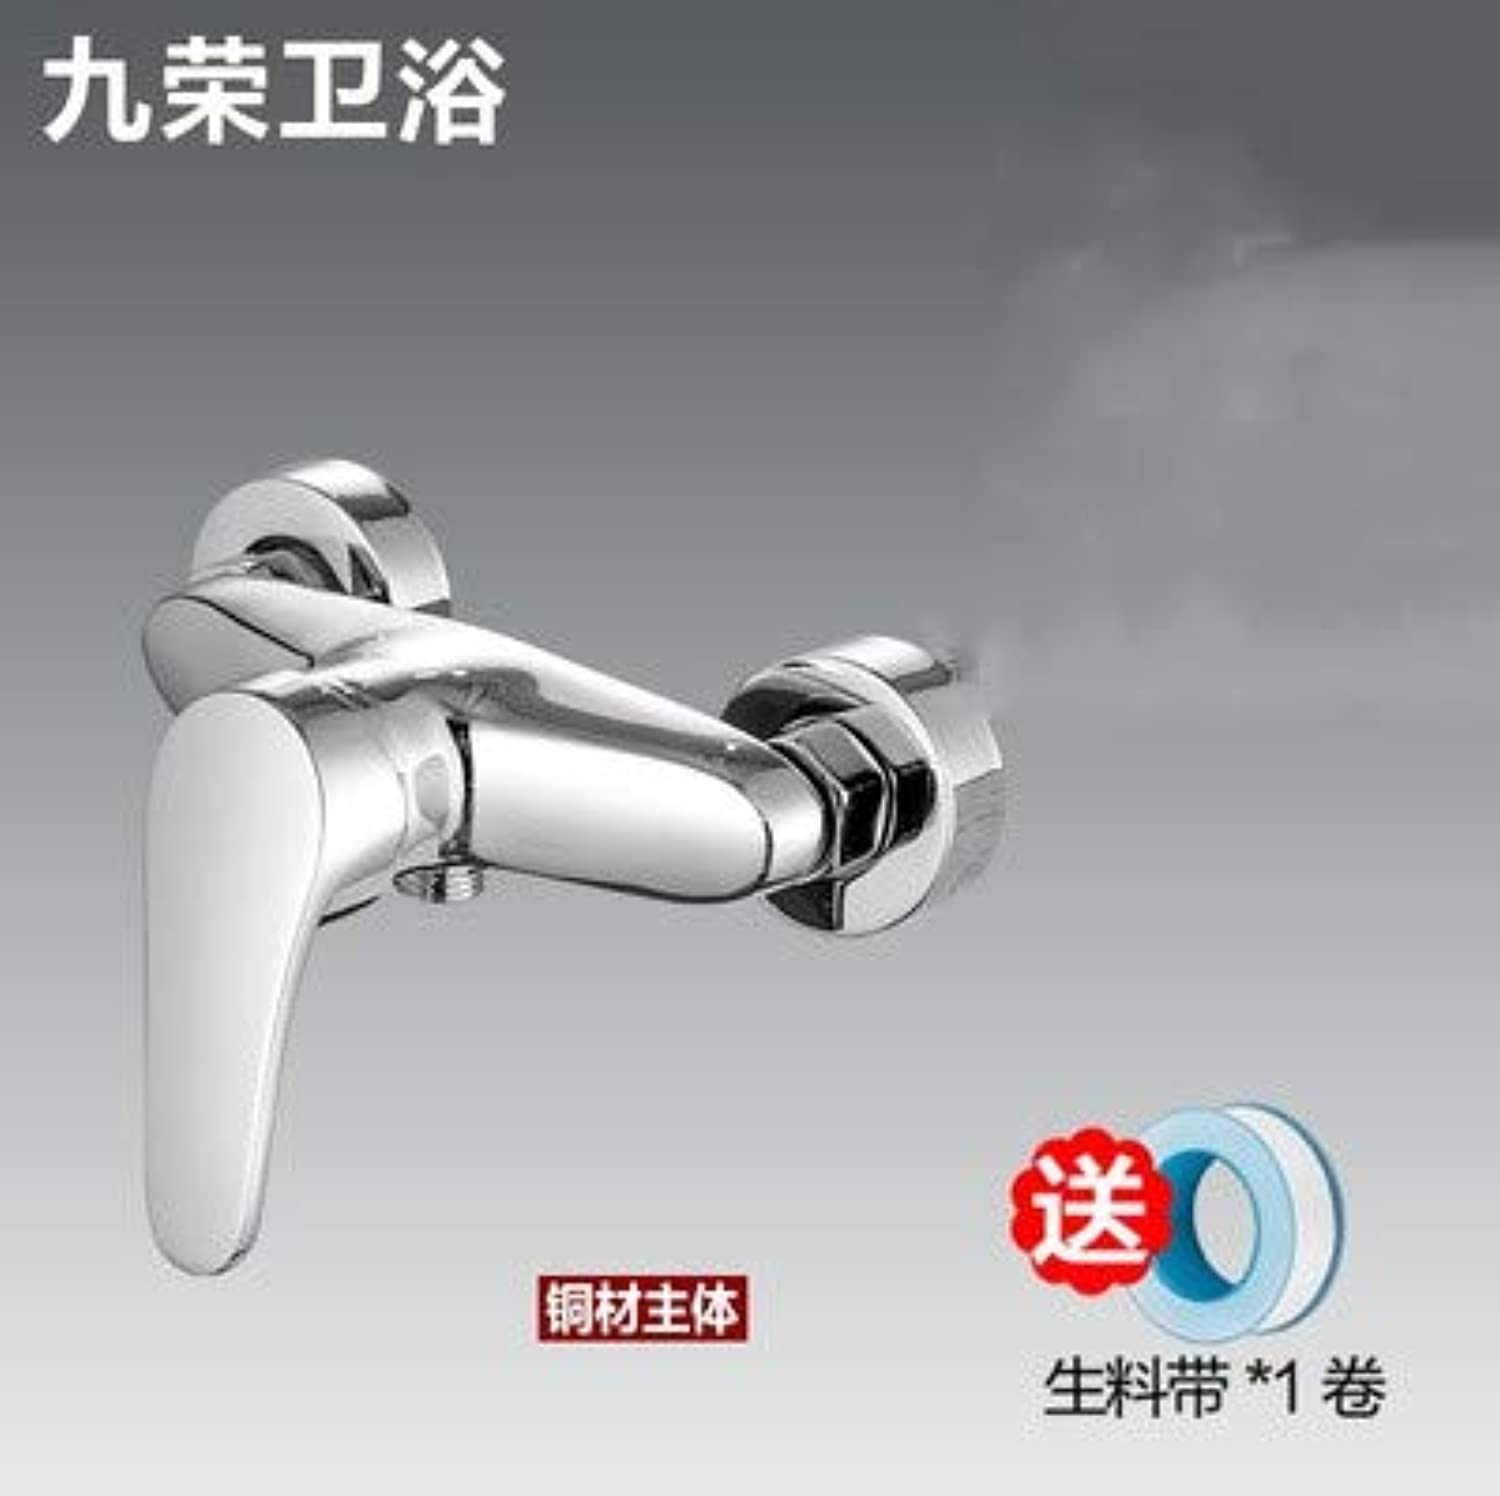 PajCzh Bathroom Fixturesbathtub Shower Faucet Wall Faucet Copper Hot And Cold Water Mixing Valve Bathroom Home Concealed Shower Set, Ordinary Type F (Single Faucet)